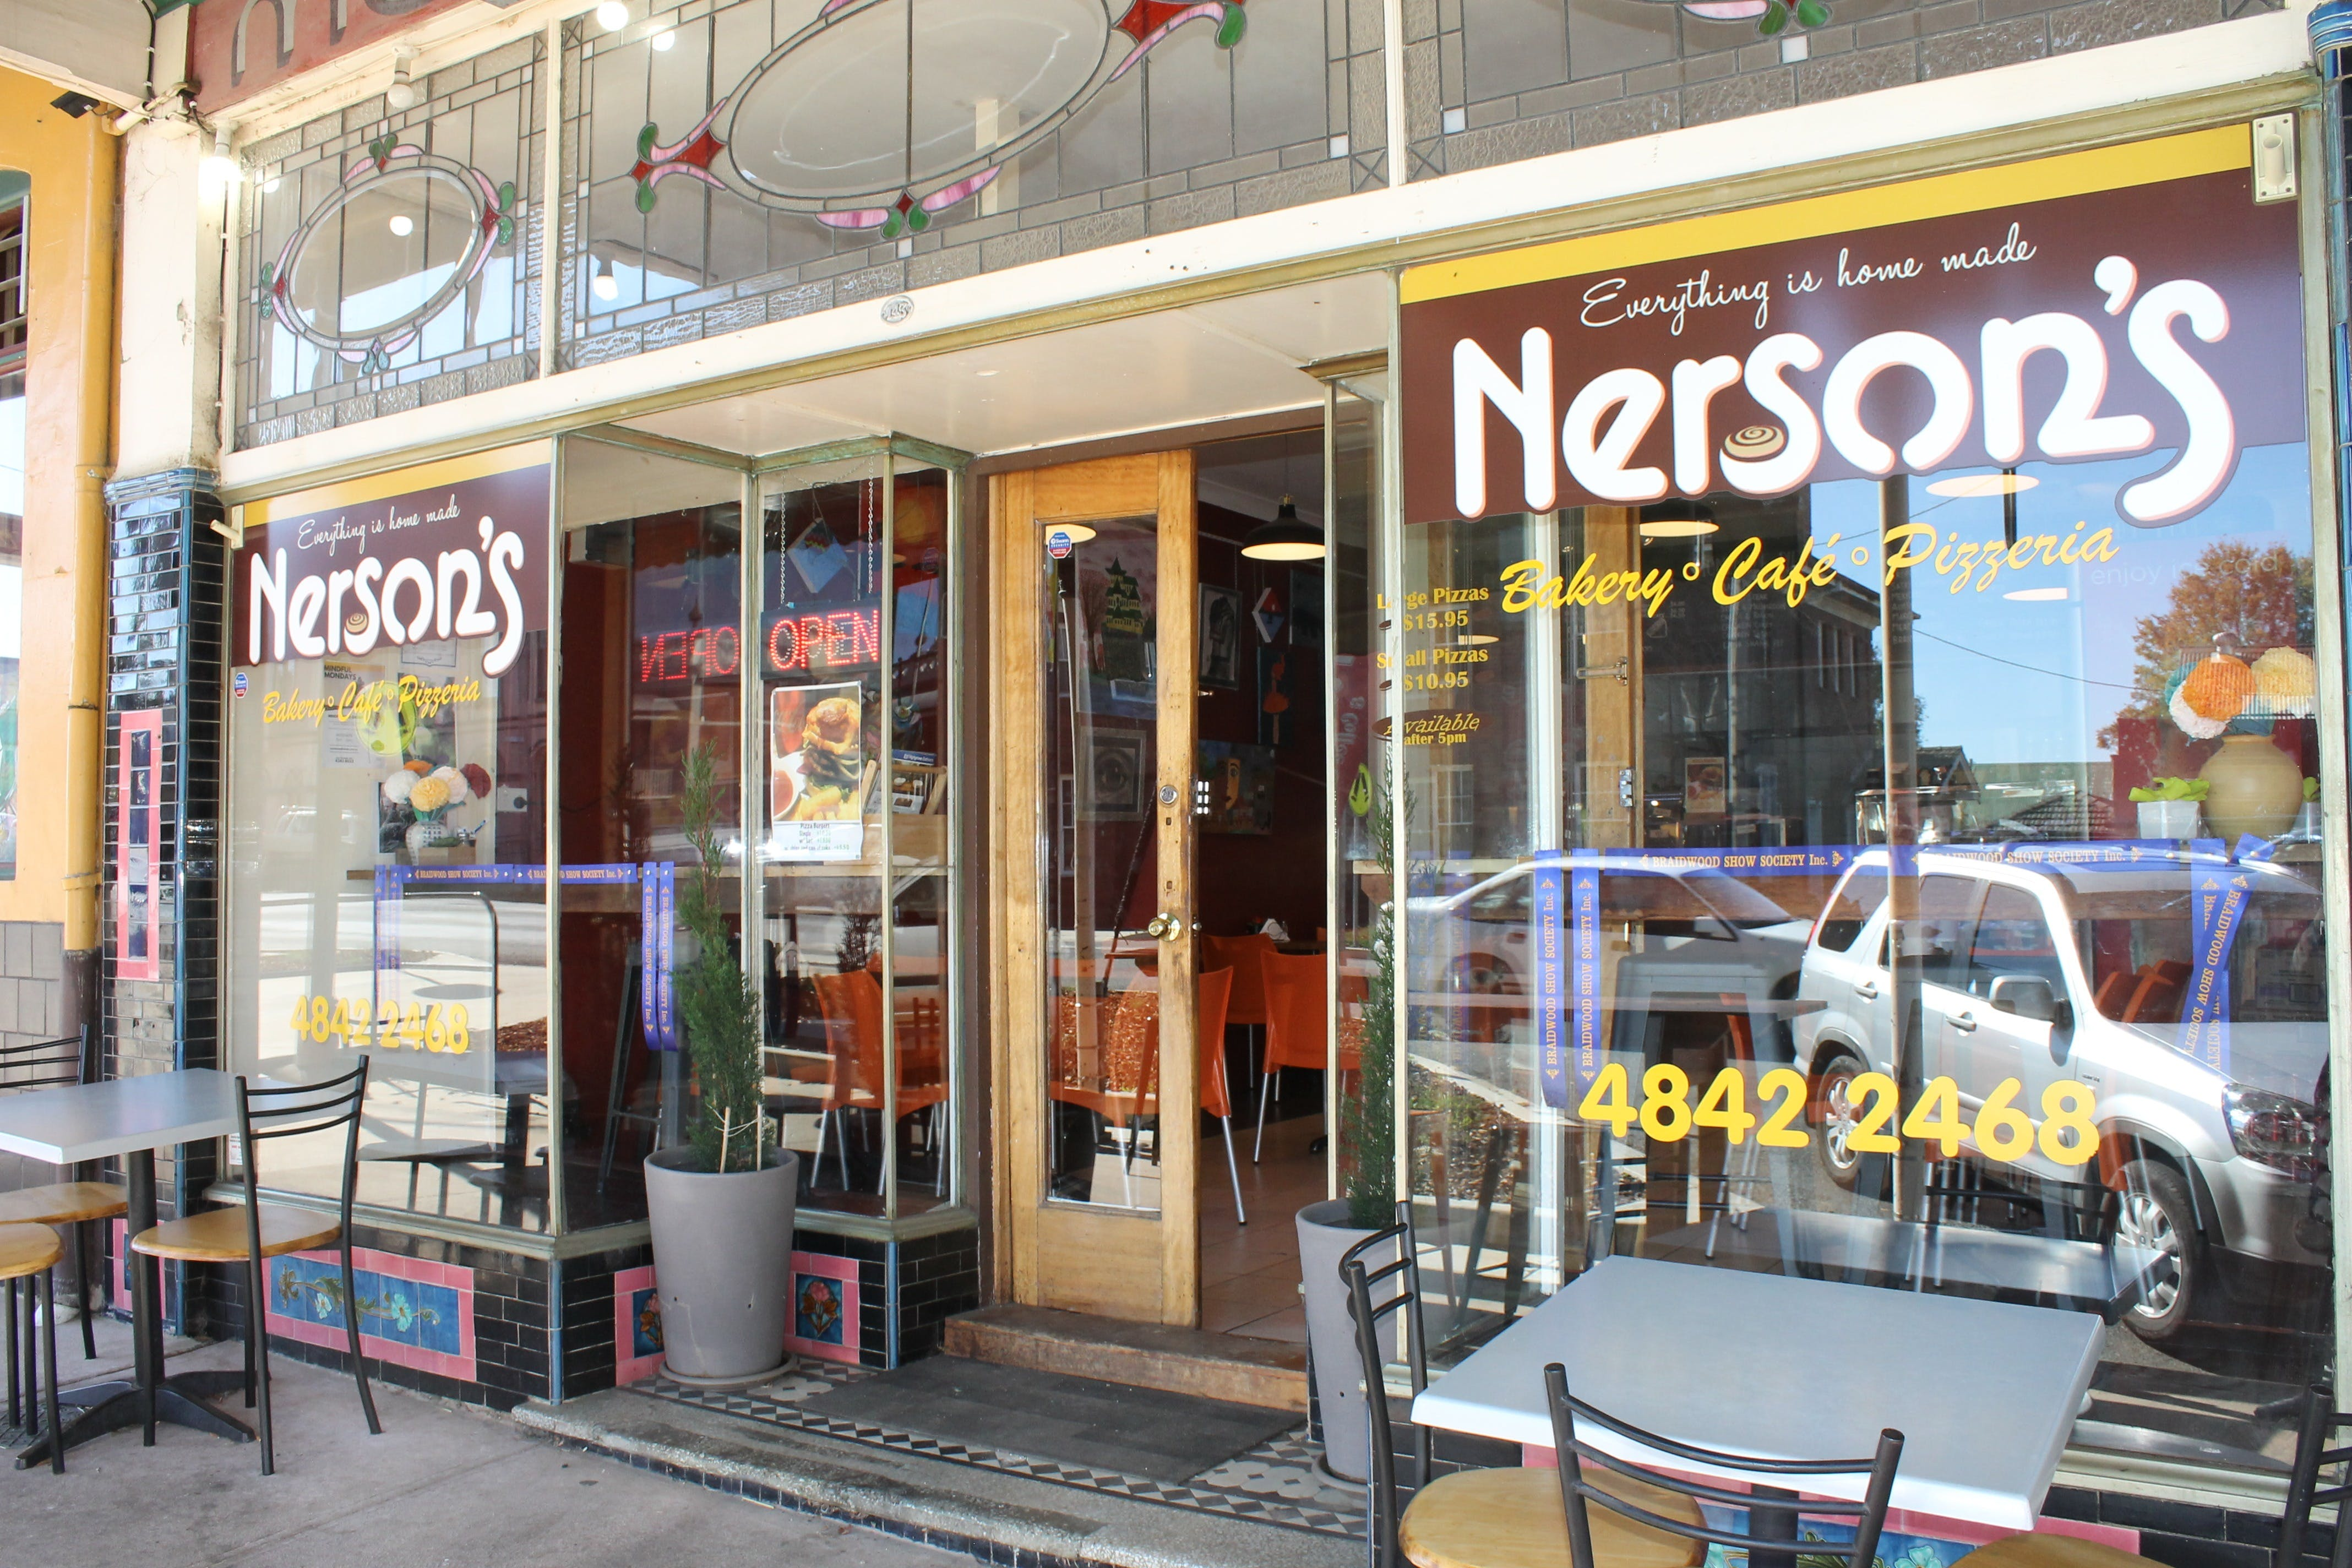 Nerson's Braidwood - Food Delivery Shop